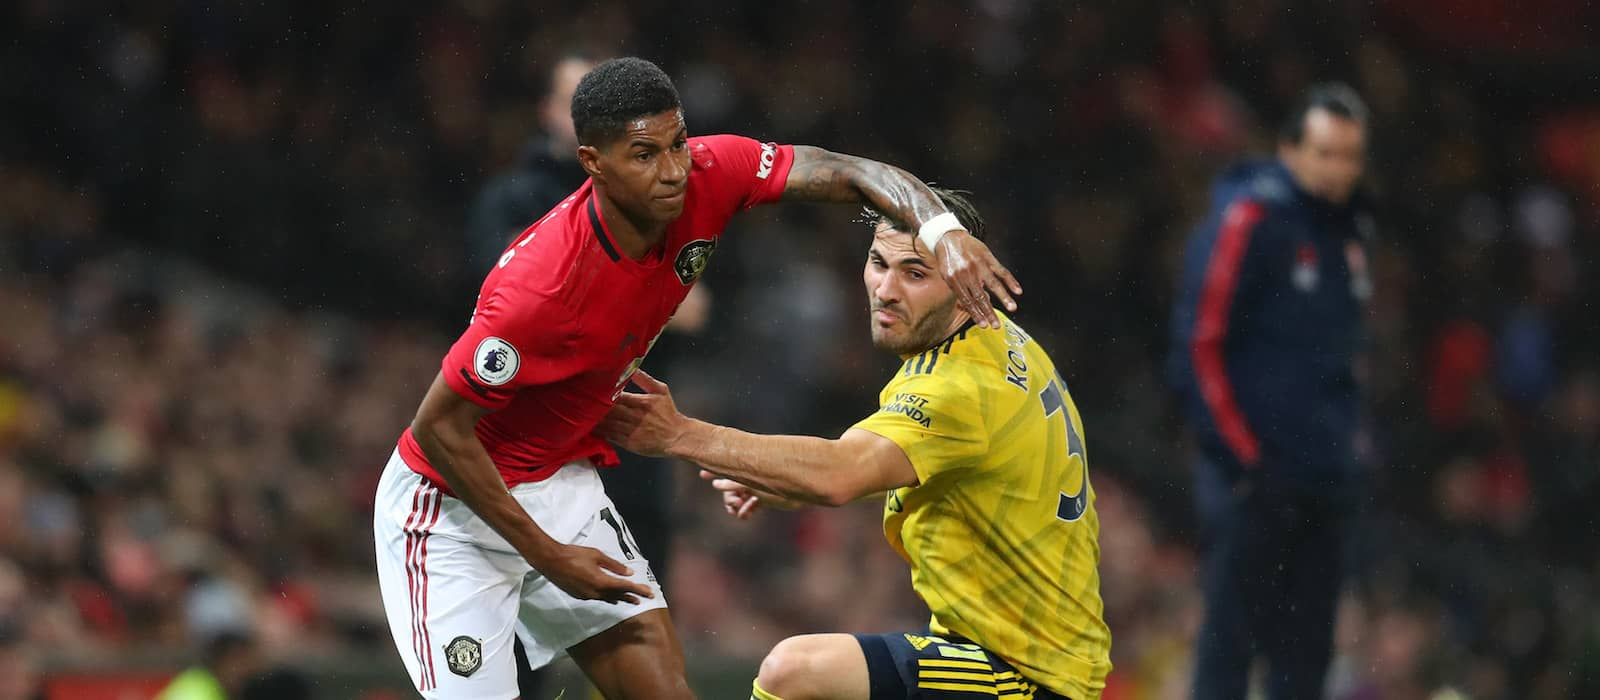 Manchester United fans recognise Marcus Rashford's best traits